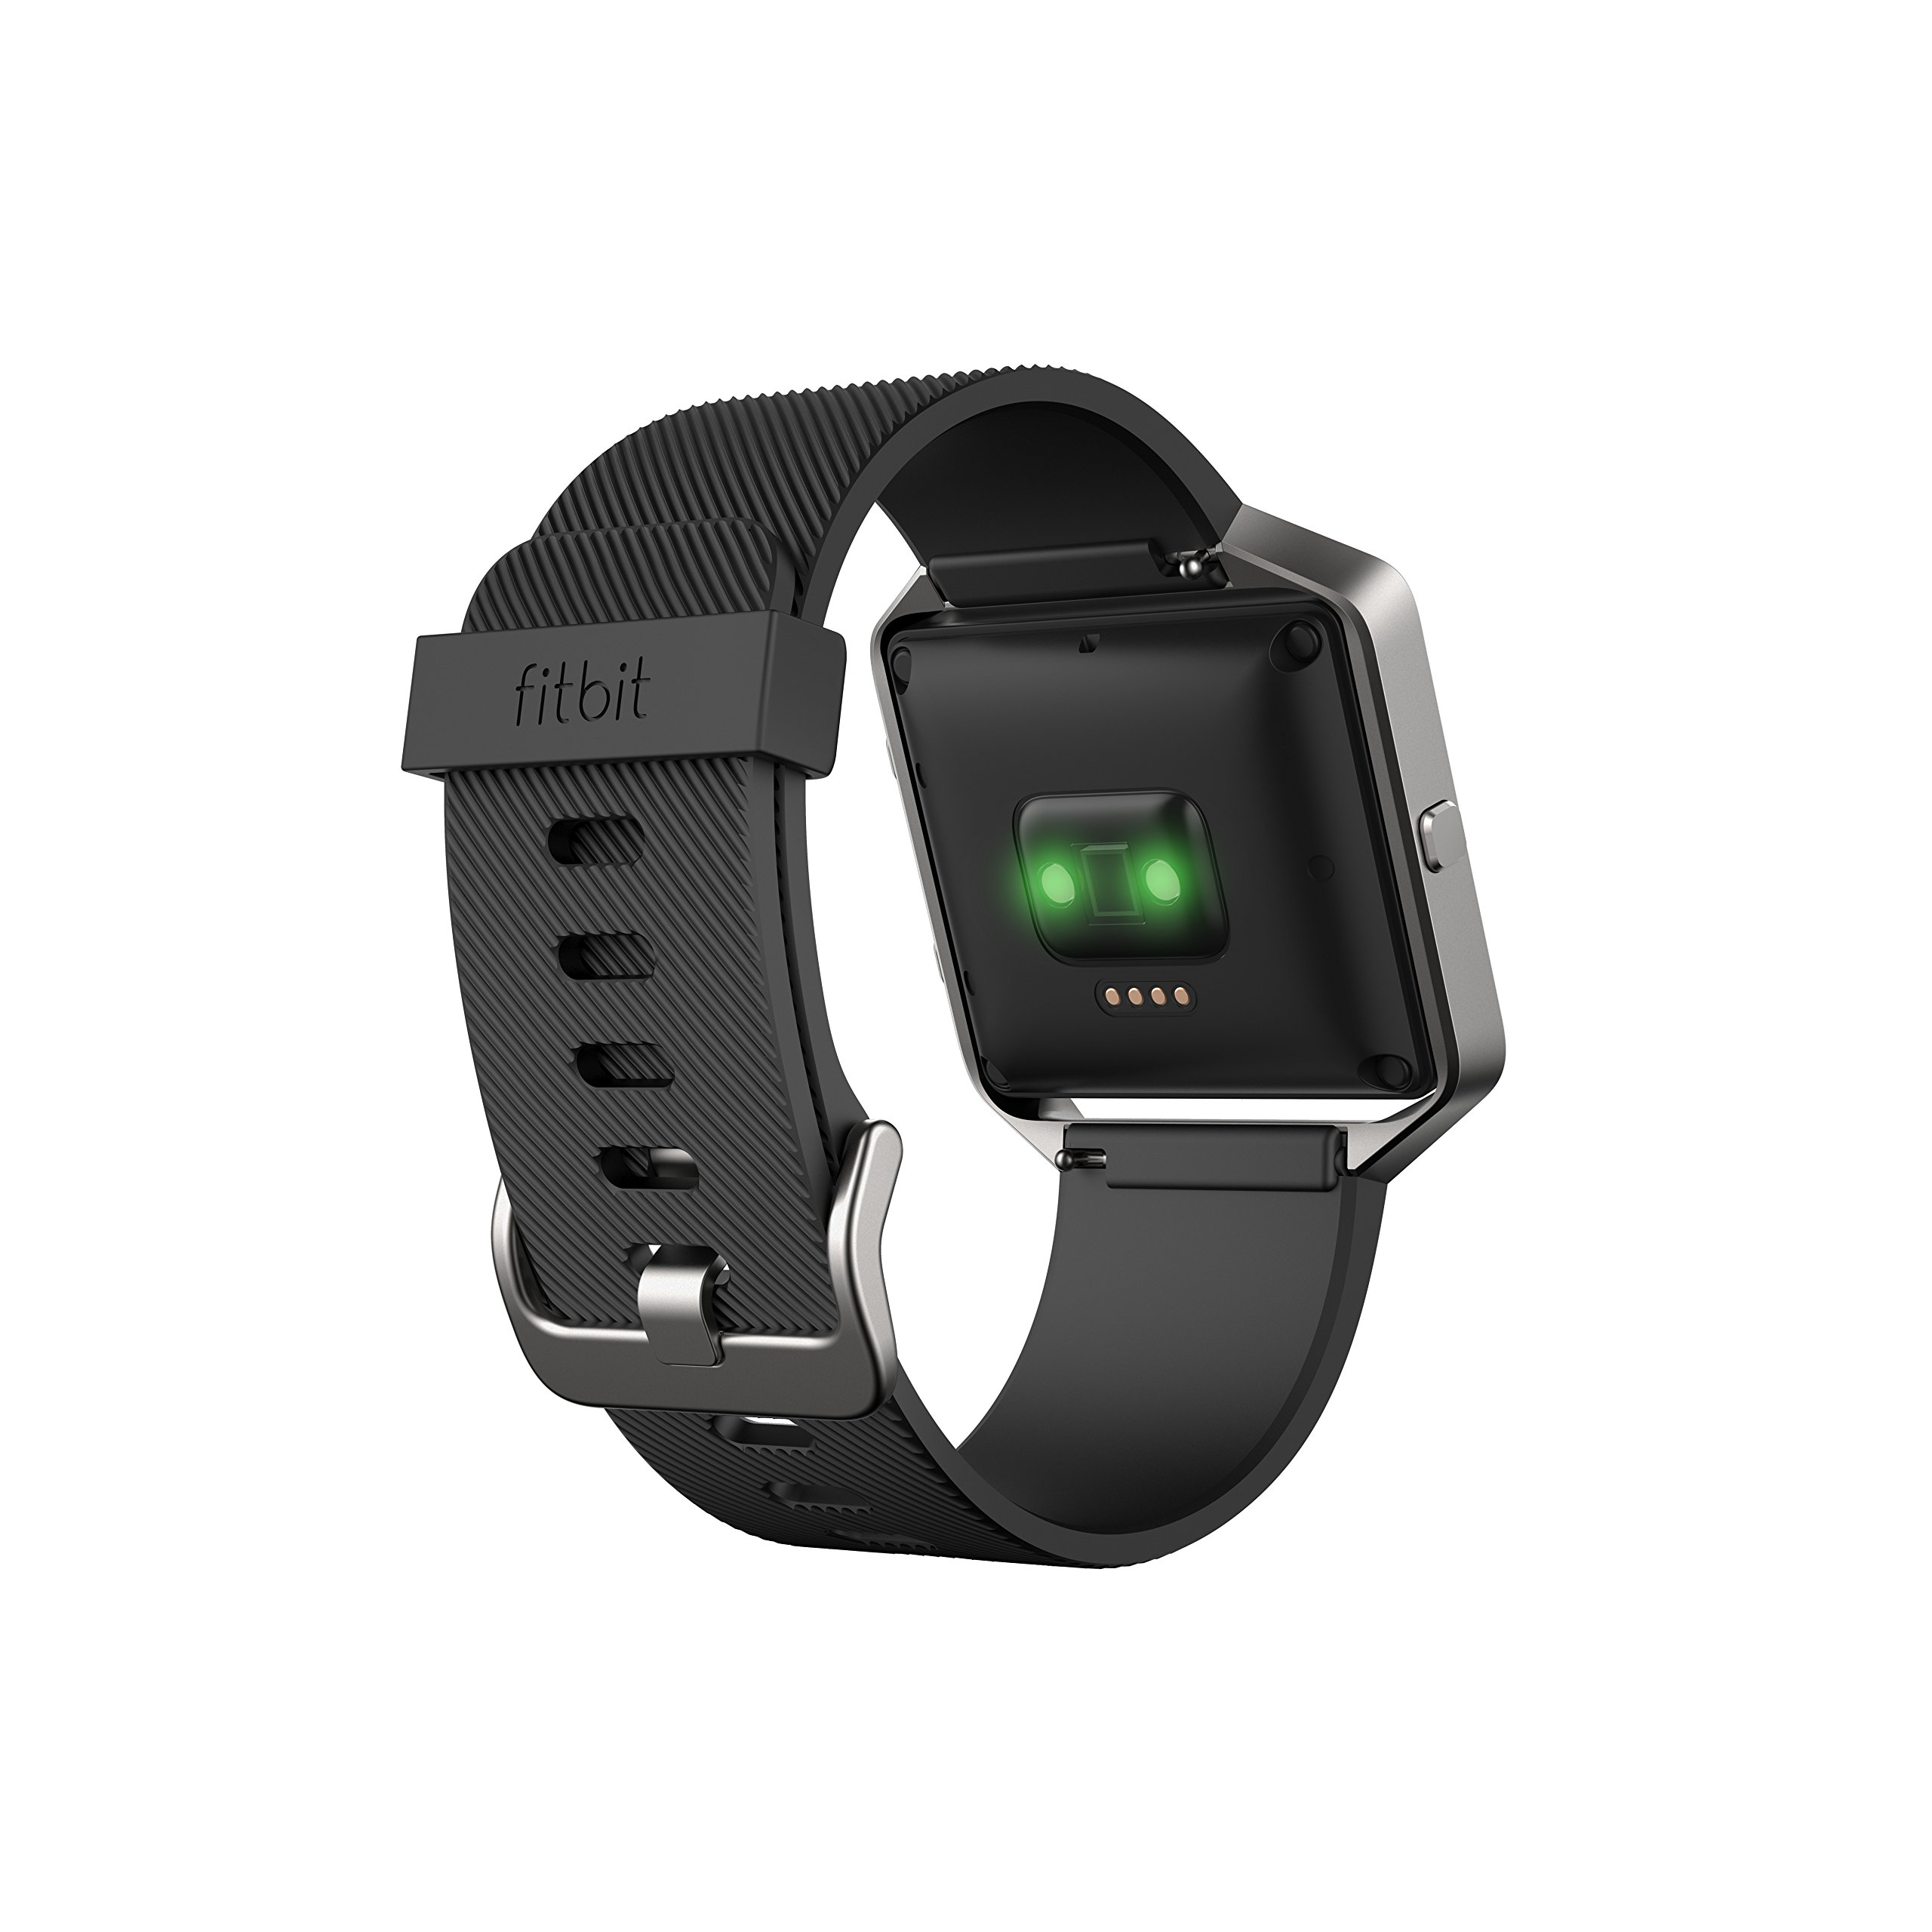 Fitbit Blaze Smart Fitness Watch, Black, Silver, Large (US Version) by Fitbit (Image #3)